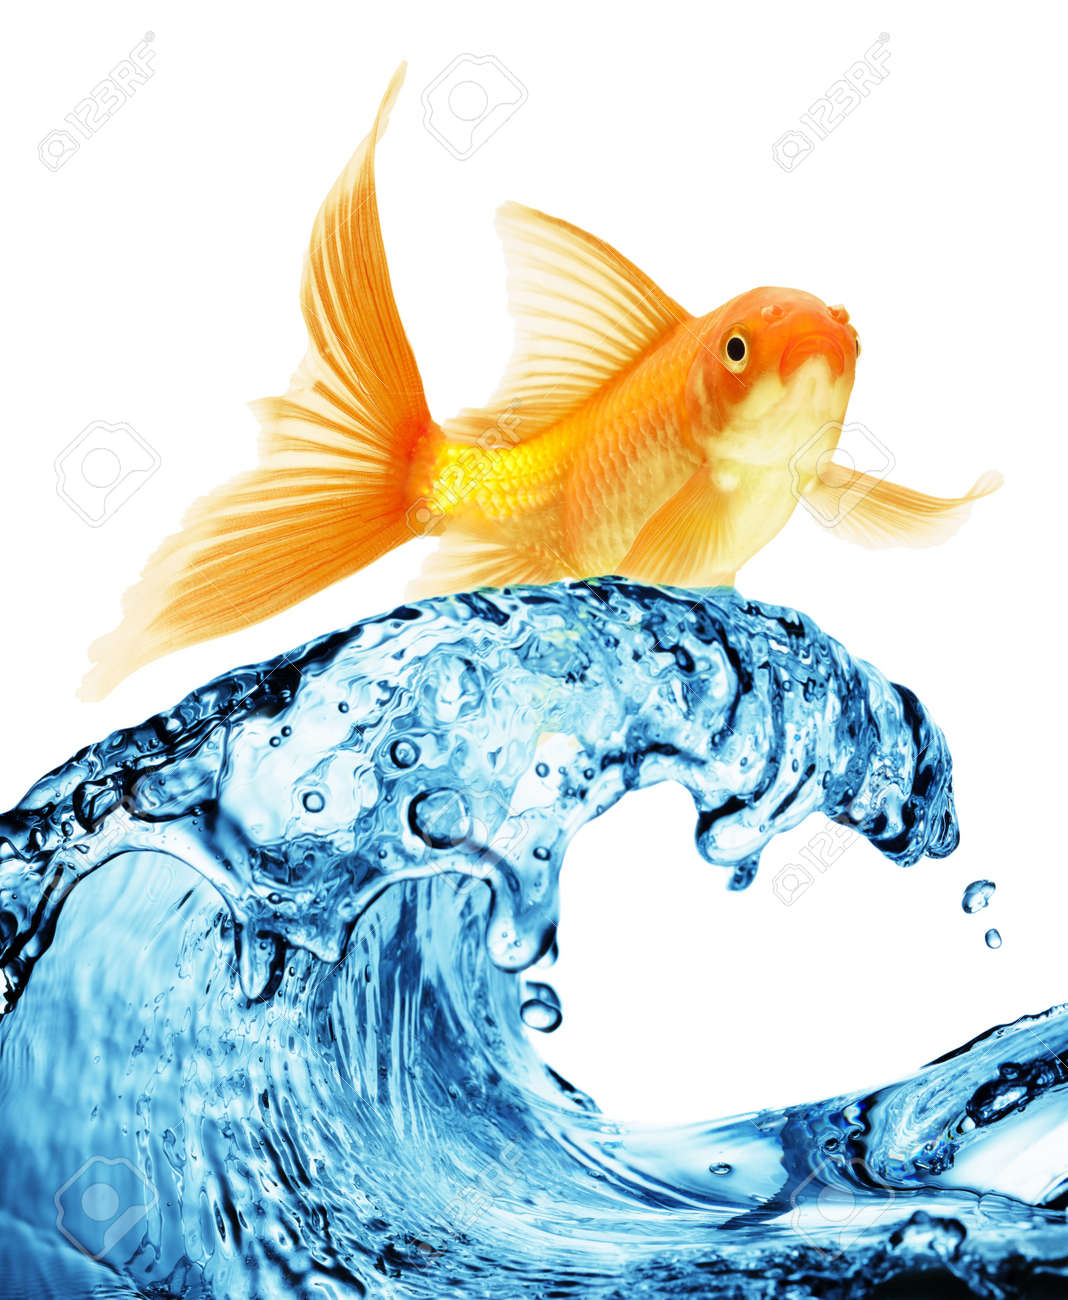 A goldfish jumping out of the water to escape to freedom. White background. Stock Photo - 7523964